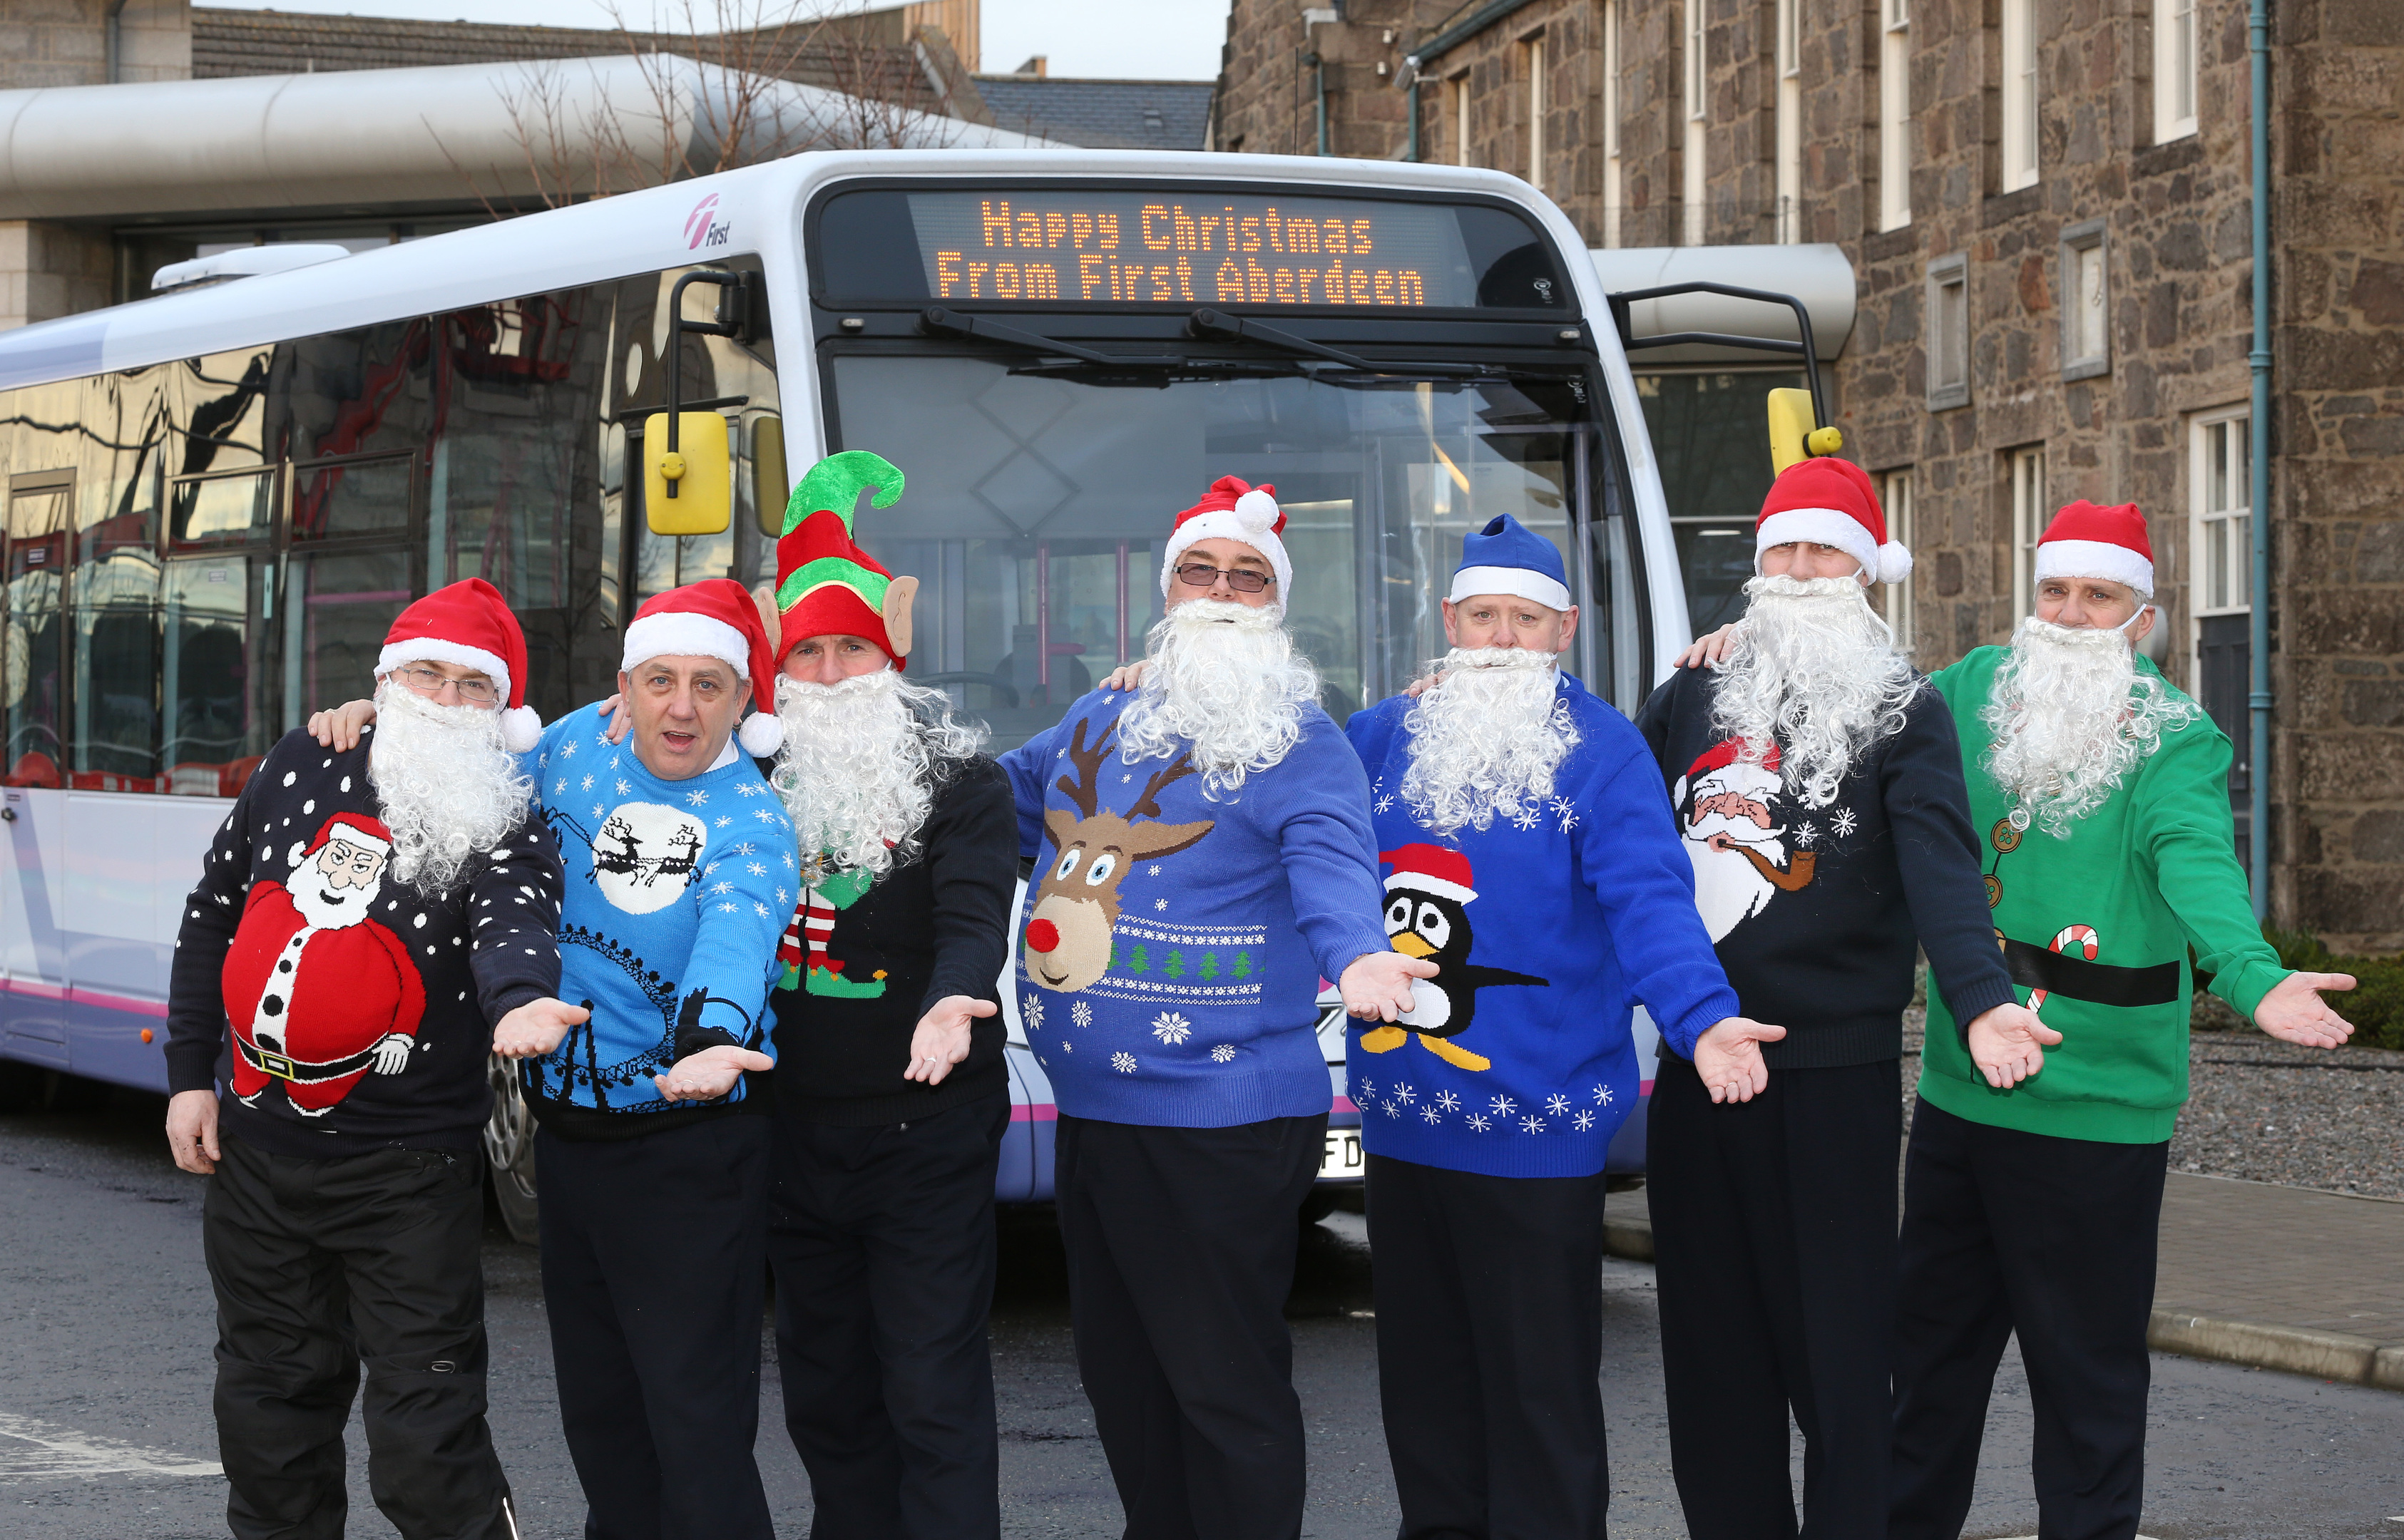 Some of First Aberdeen's drivers in their Christmas knits.